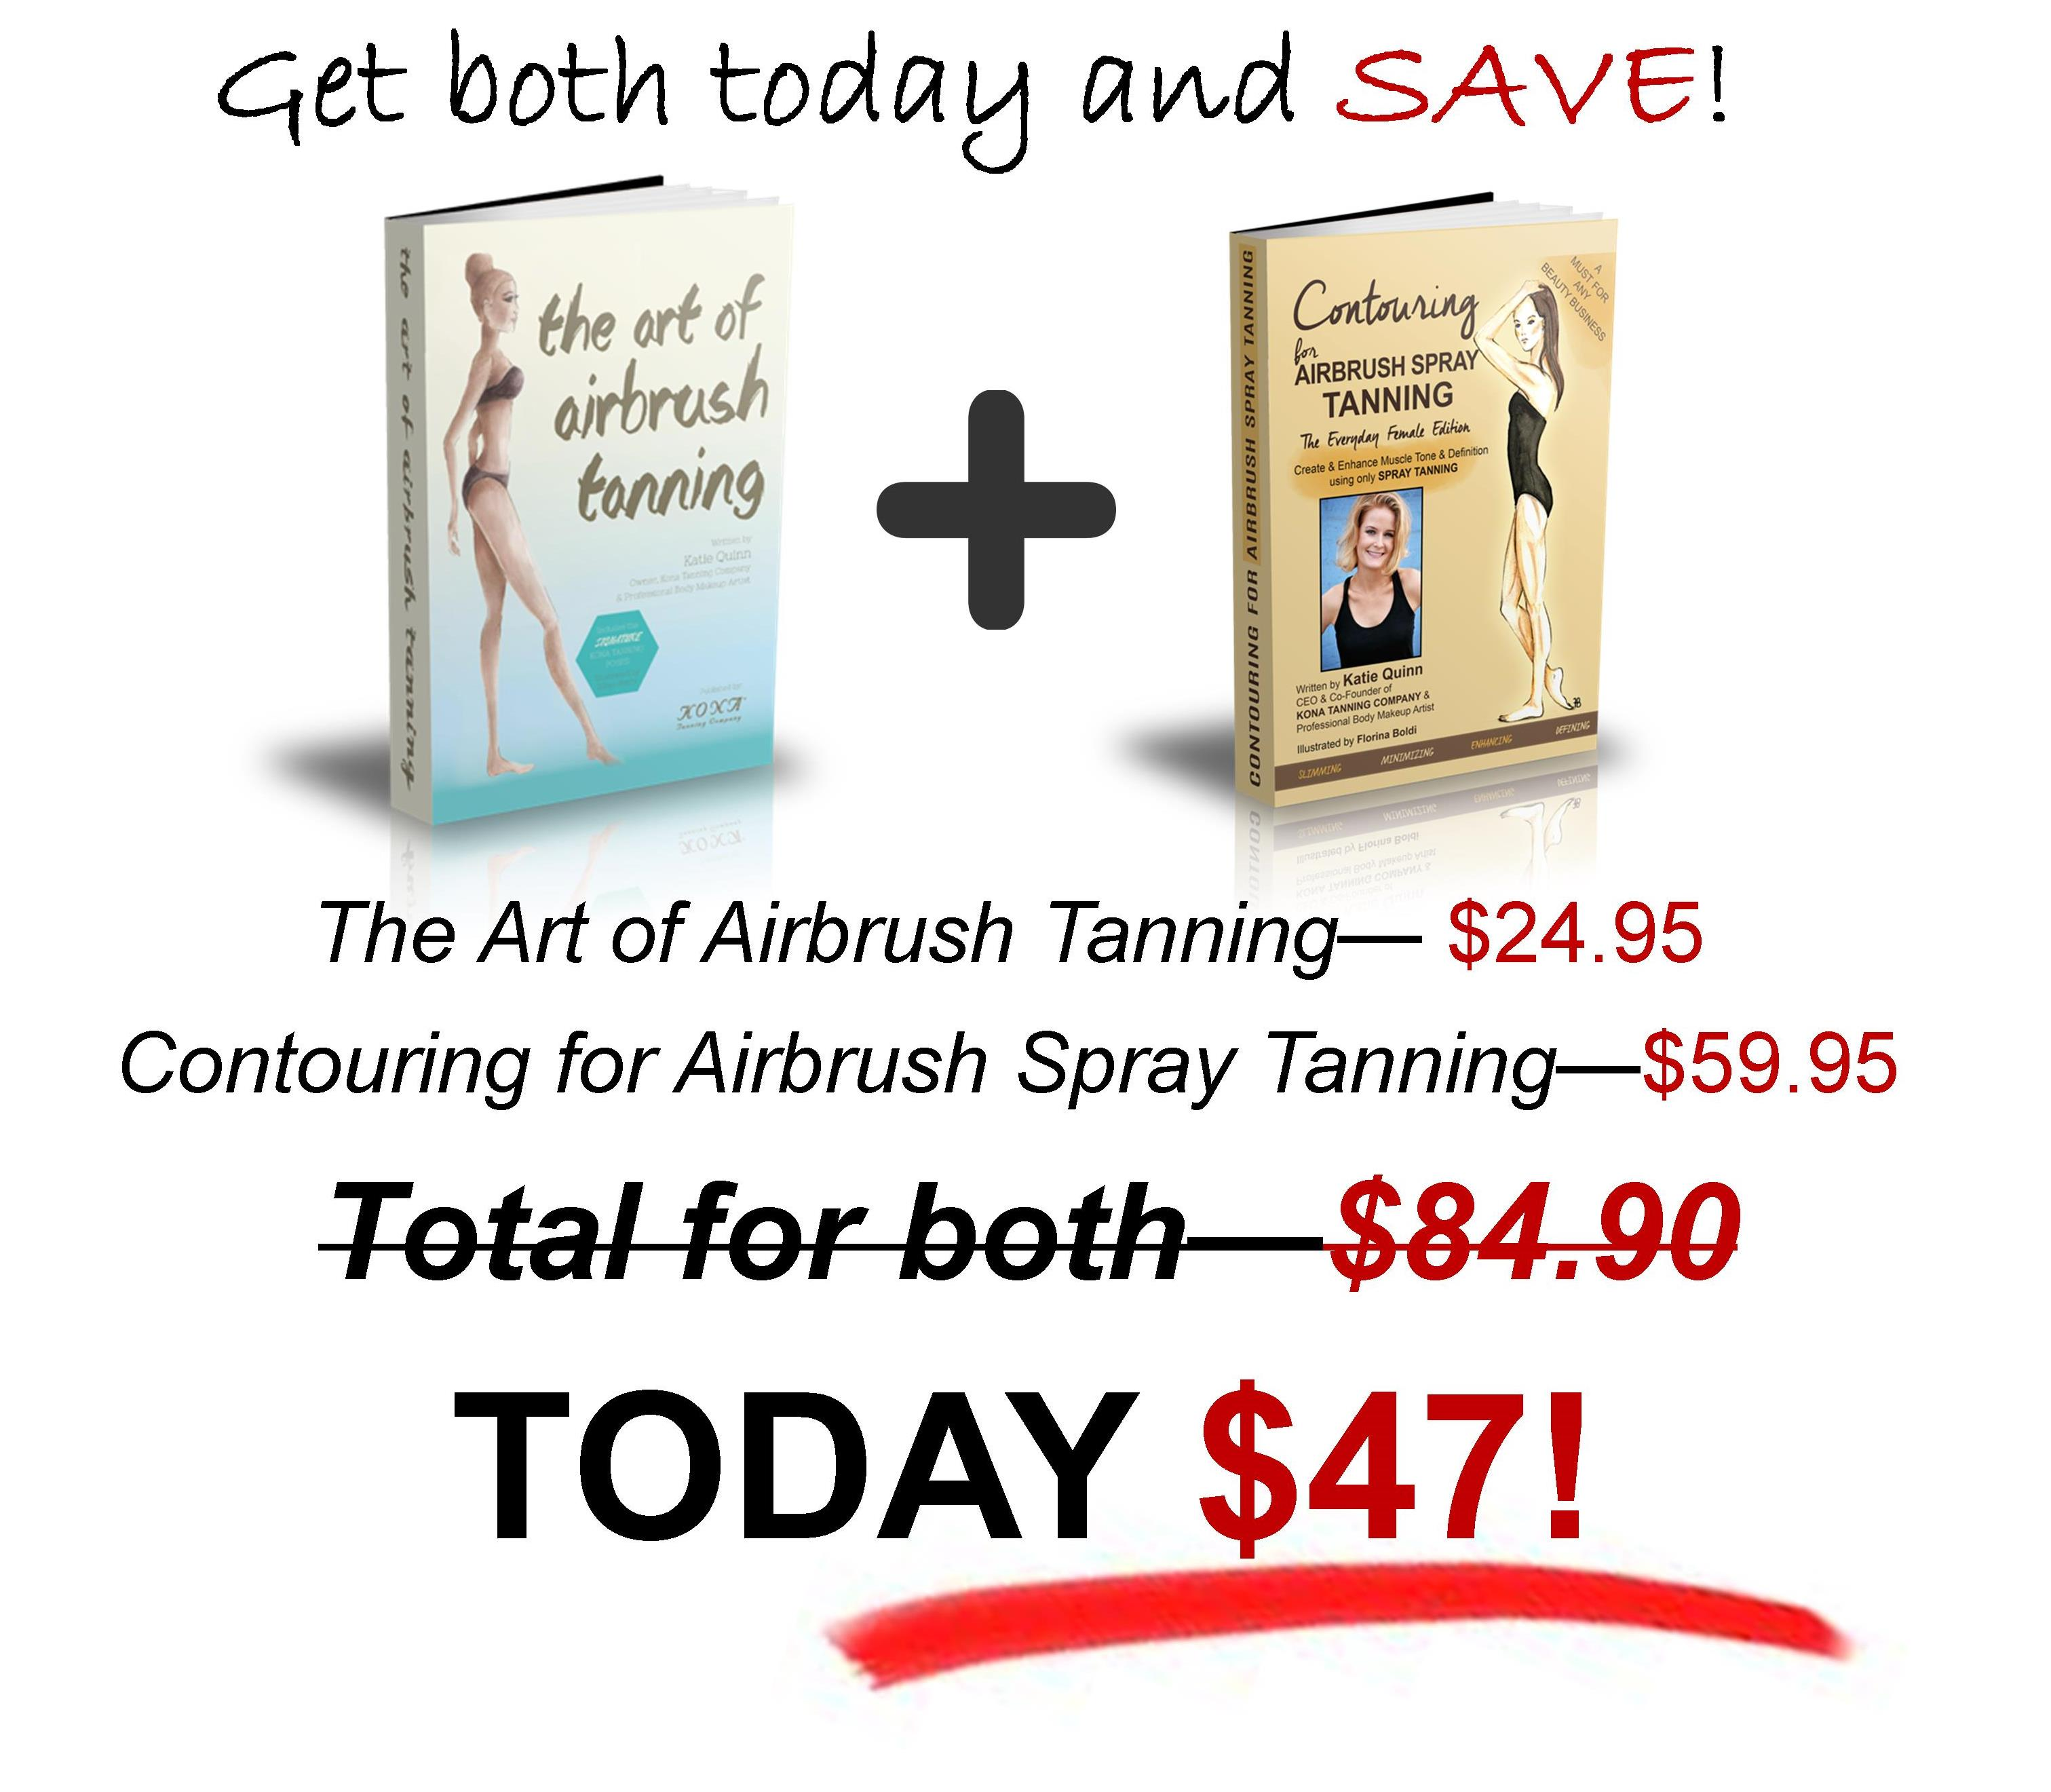 Katie Quinn's Book Set:  Save on The Art of Airbrush Tanning & Contouring for Airbrush Spray Tanning Today at www.AirbrushAbs.com!